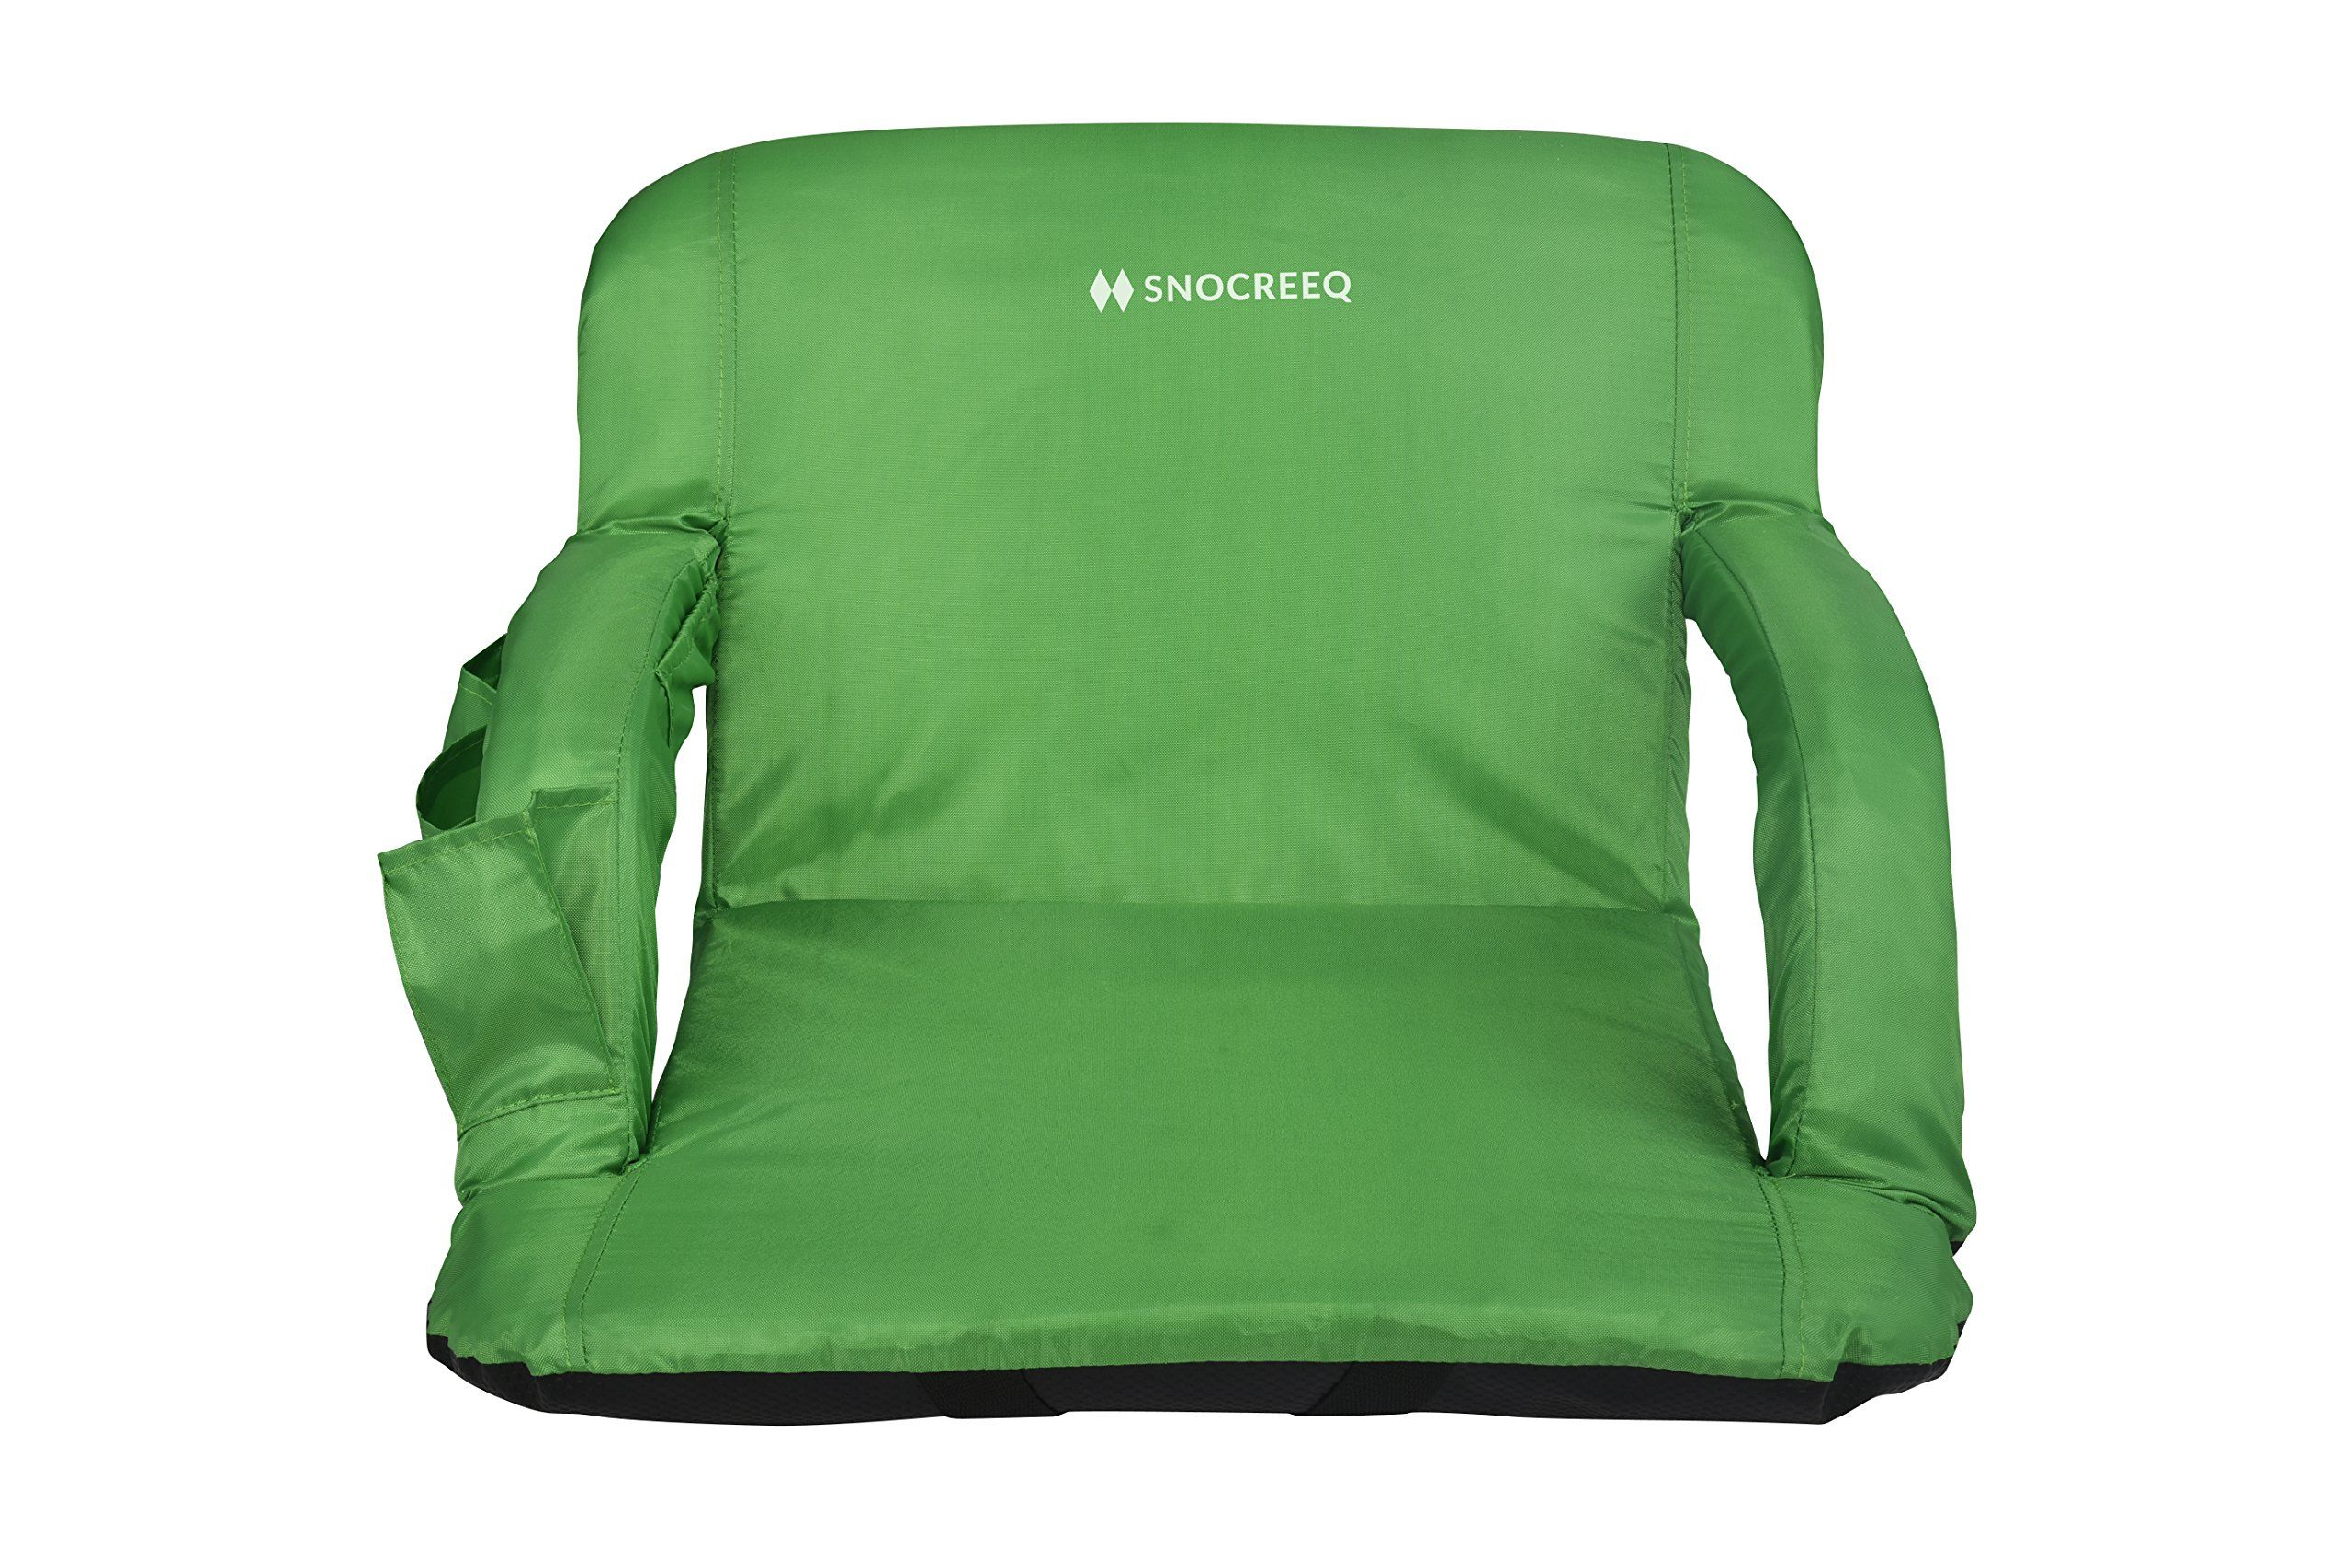 Padded Stadium Chairs Seat Cushion Bleacher Folding Portable with Arms Green